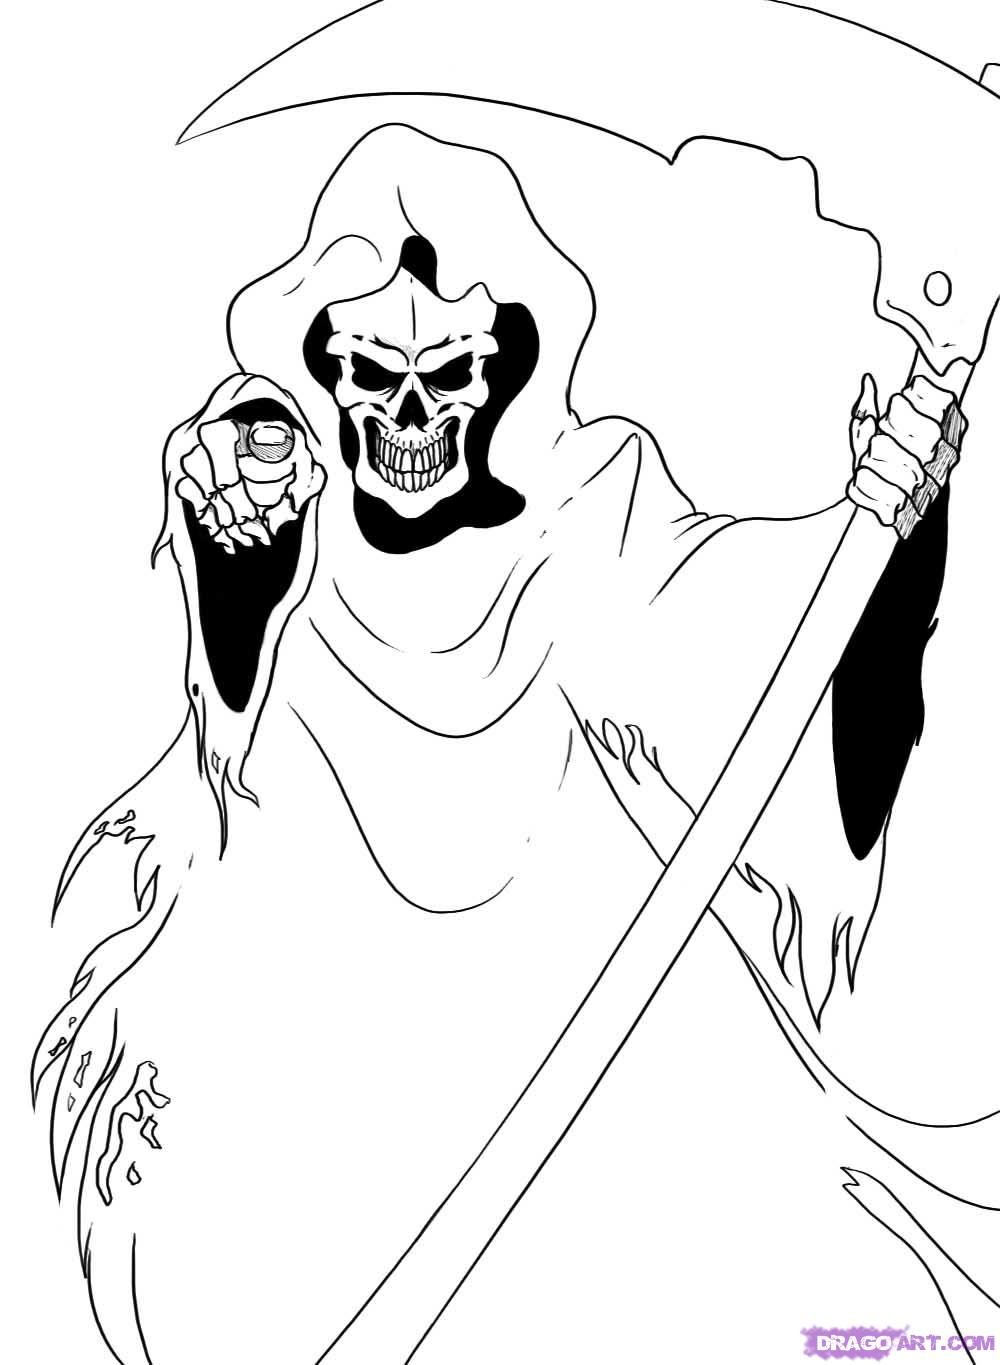 holloween easy to draw simple things drawings grim reaper mellos - How To Draw Halloween Decorations